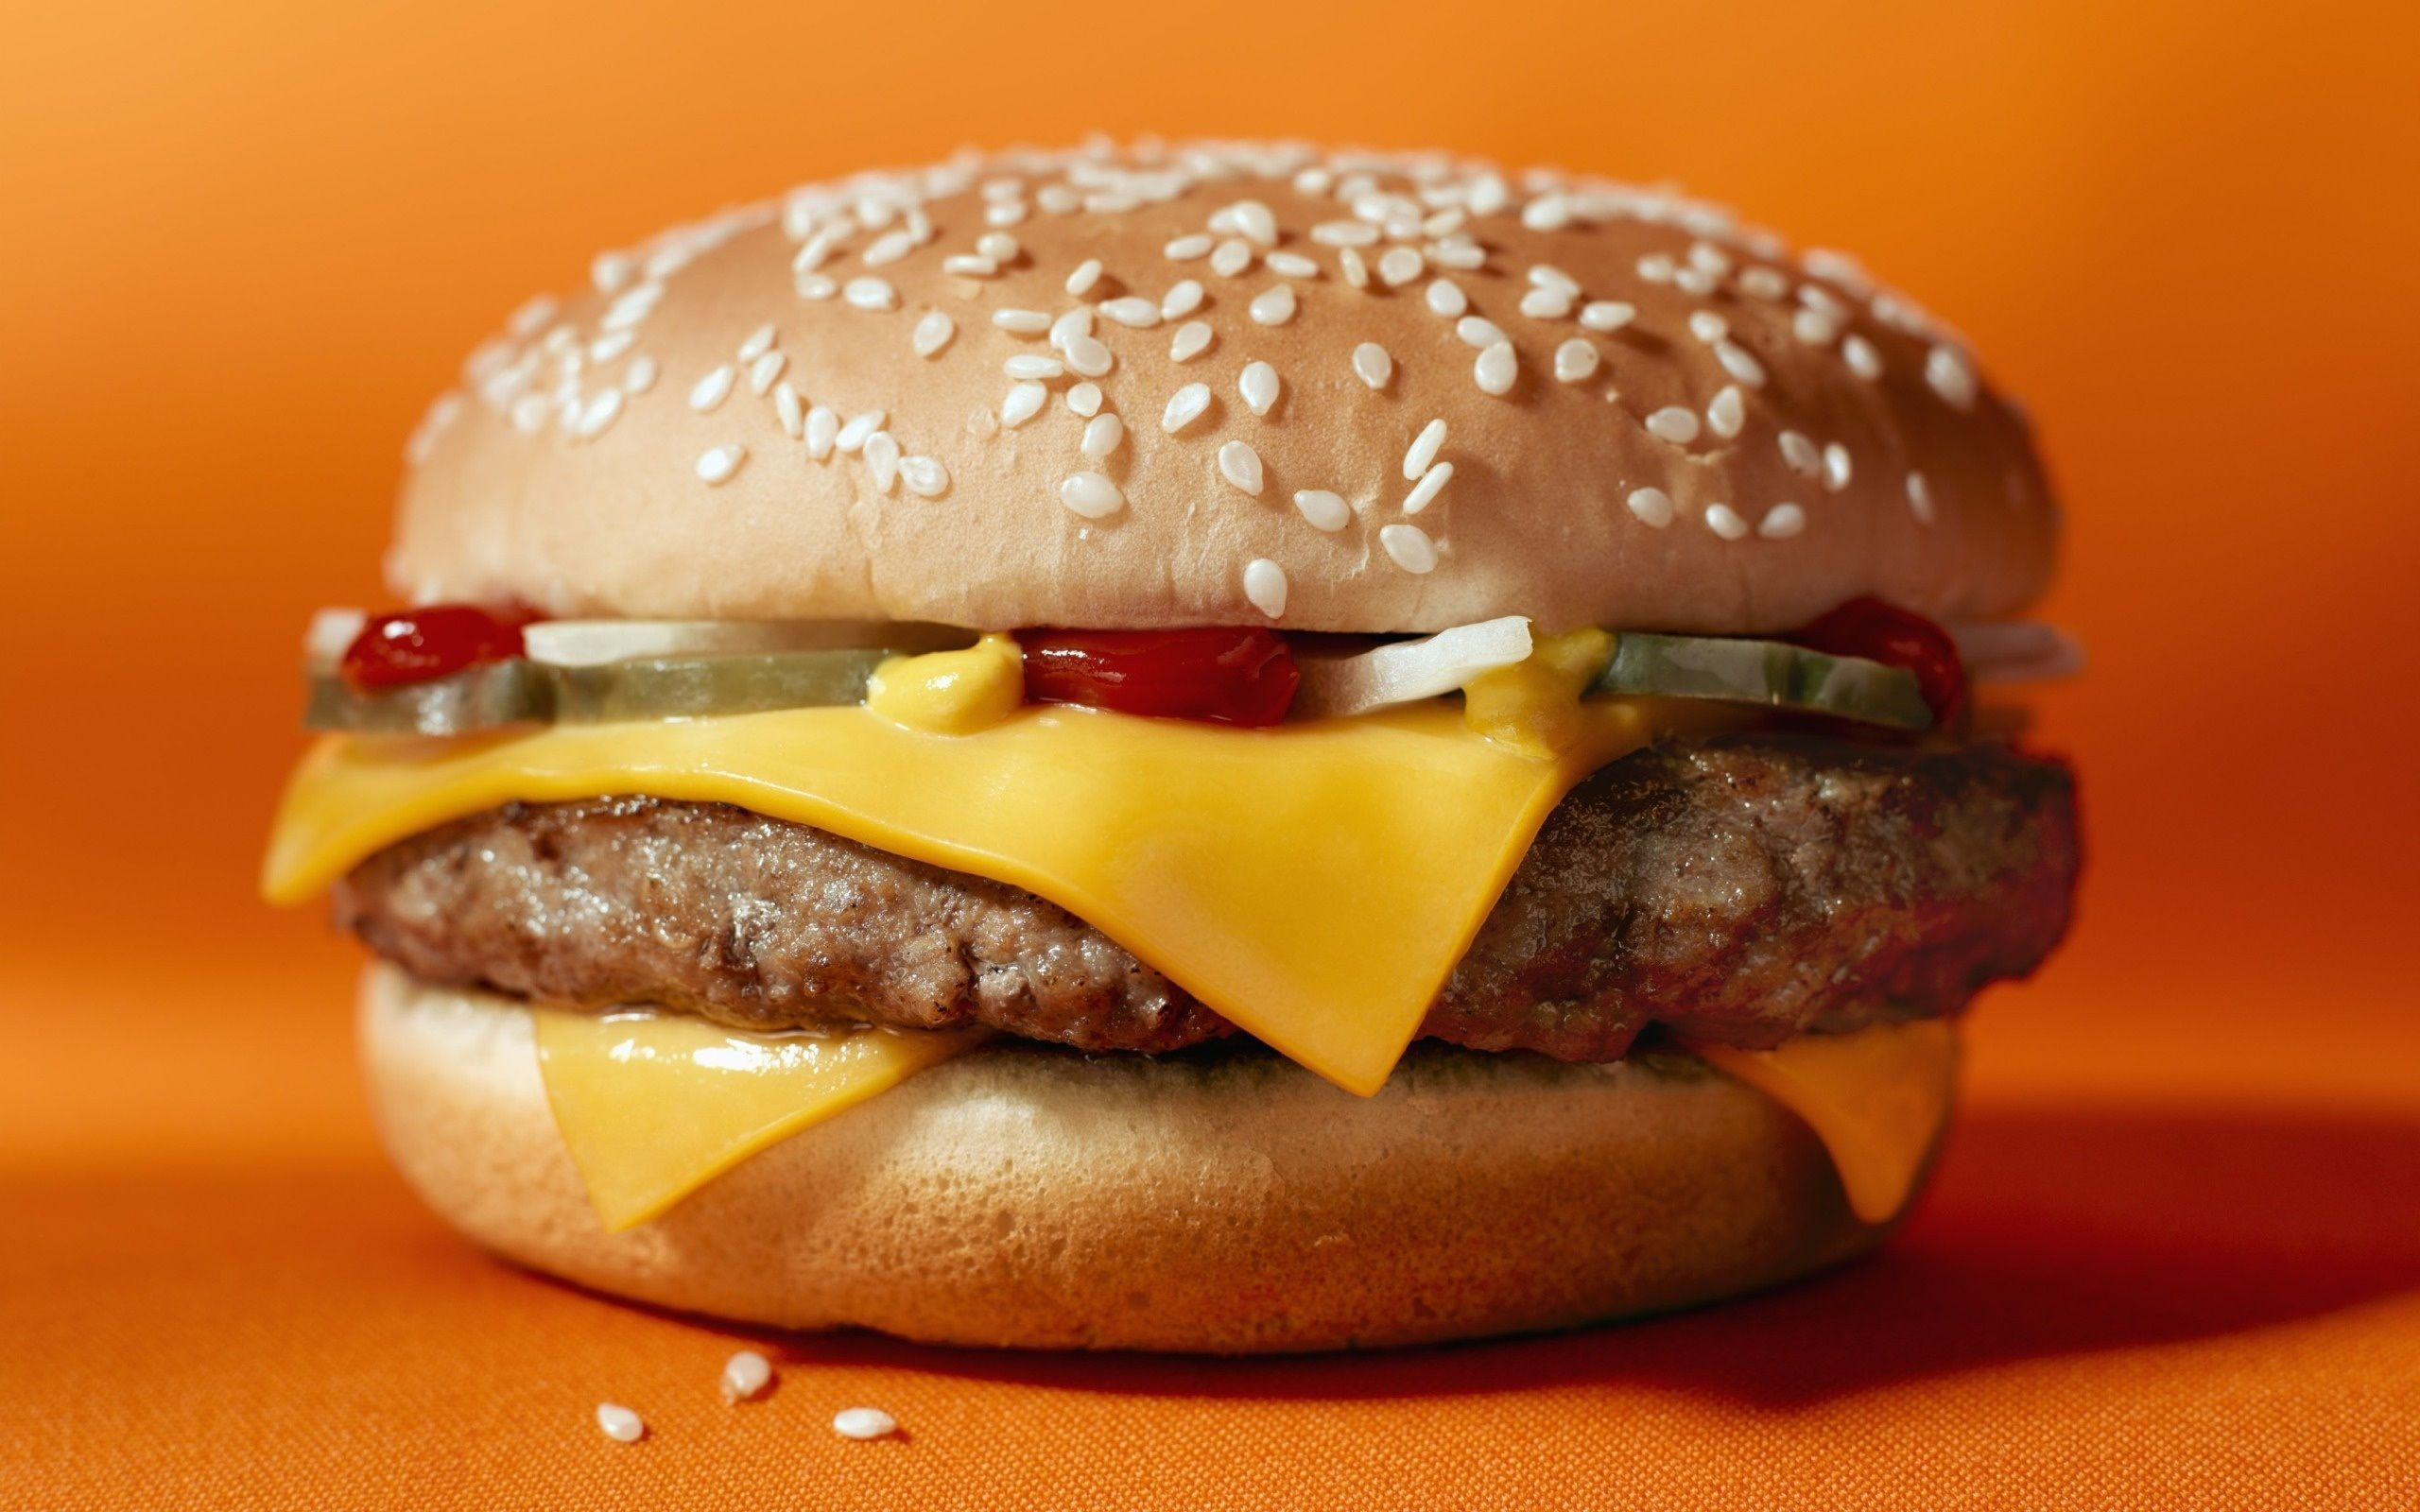 2560x1600 Cheeseburger Wallpapers Group with 46 items